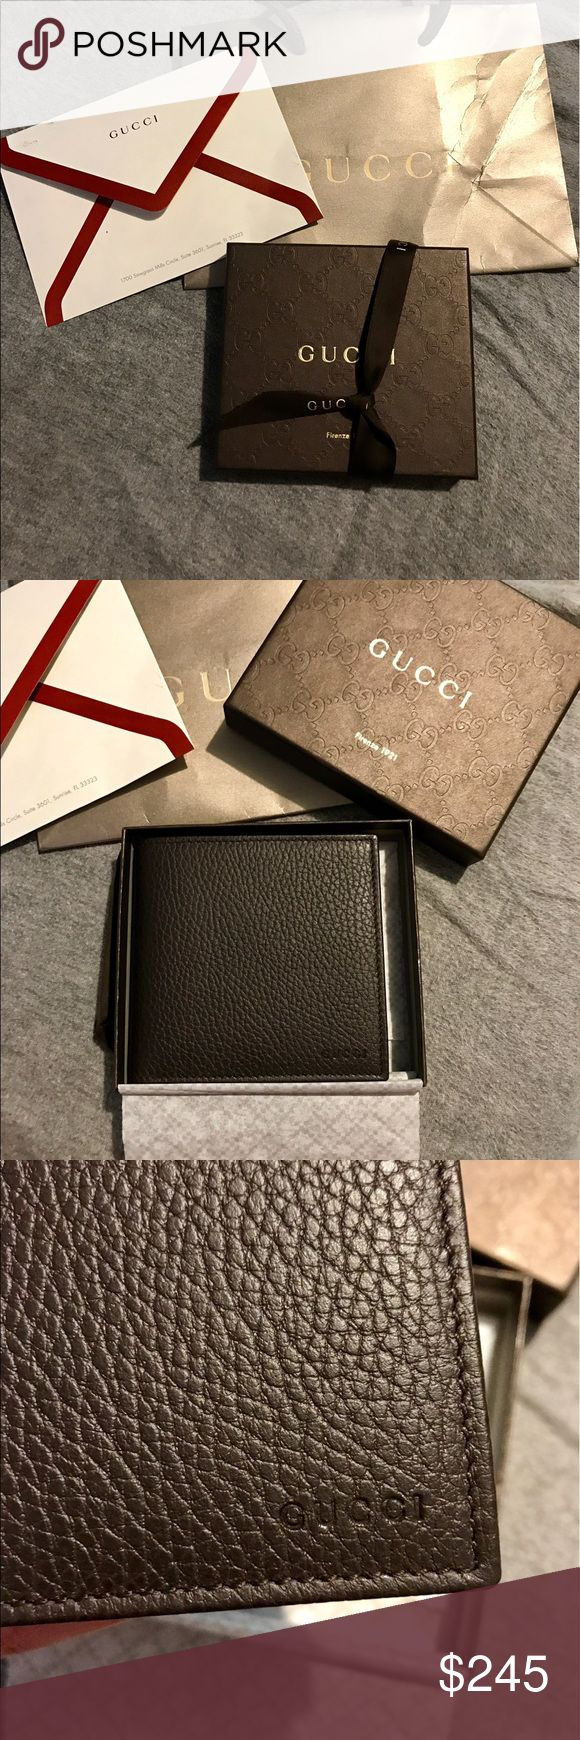 Gucci wallet Men's Gucci wallet! Never been used comes with all items shown in photo! Great gift for Father's Day  ! Can ship immediately . Wallet is authentic , do not have receipt anymore but serial number in last photo! Make a reasonable offer please keep in mind the % for PM! Gucci Bags Wallets